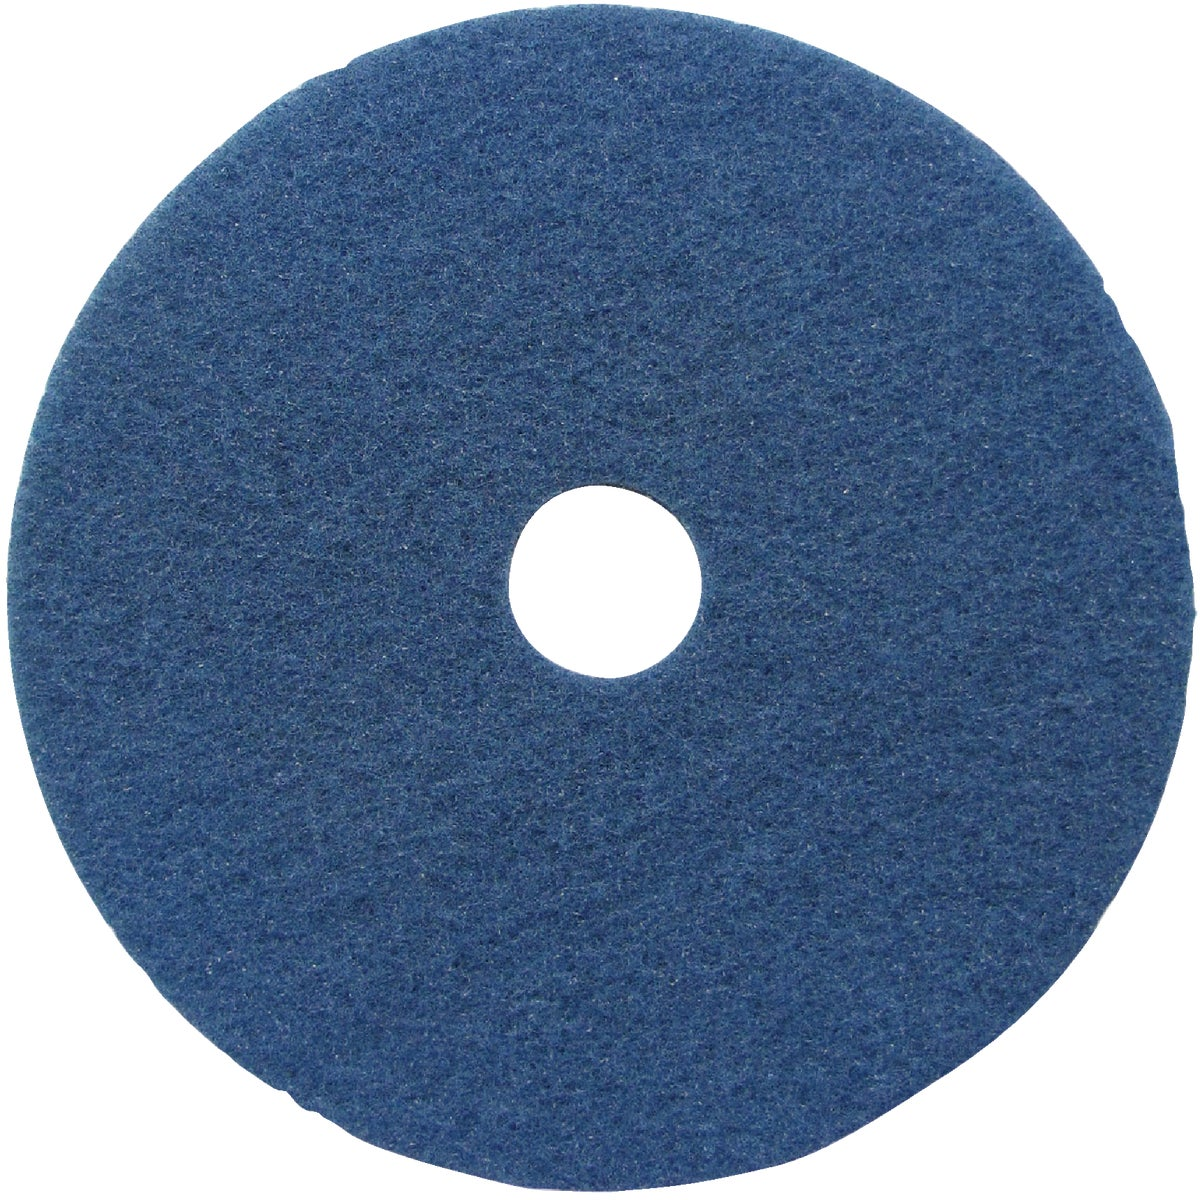 "20"" BLUE POLISH PAD - TKL20BL by Lundmark Wax Co"